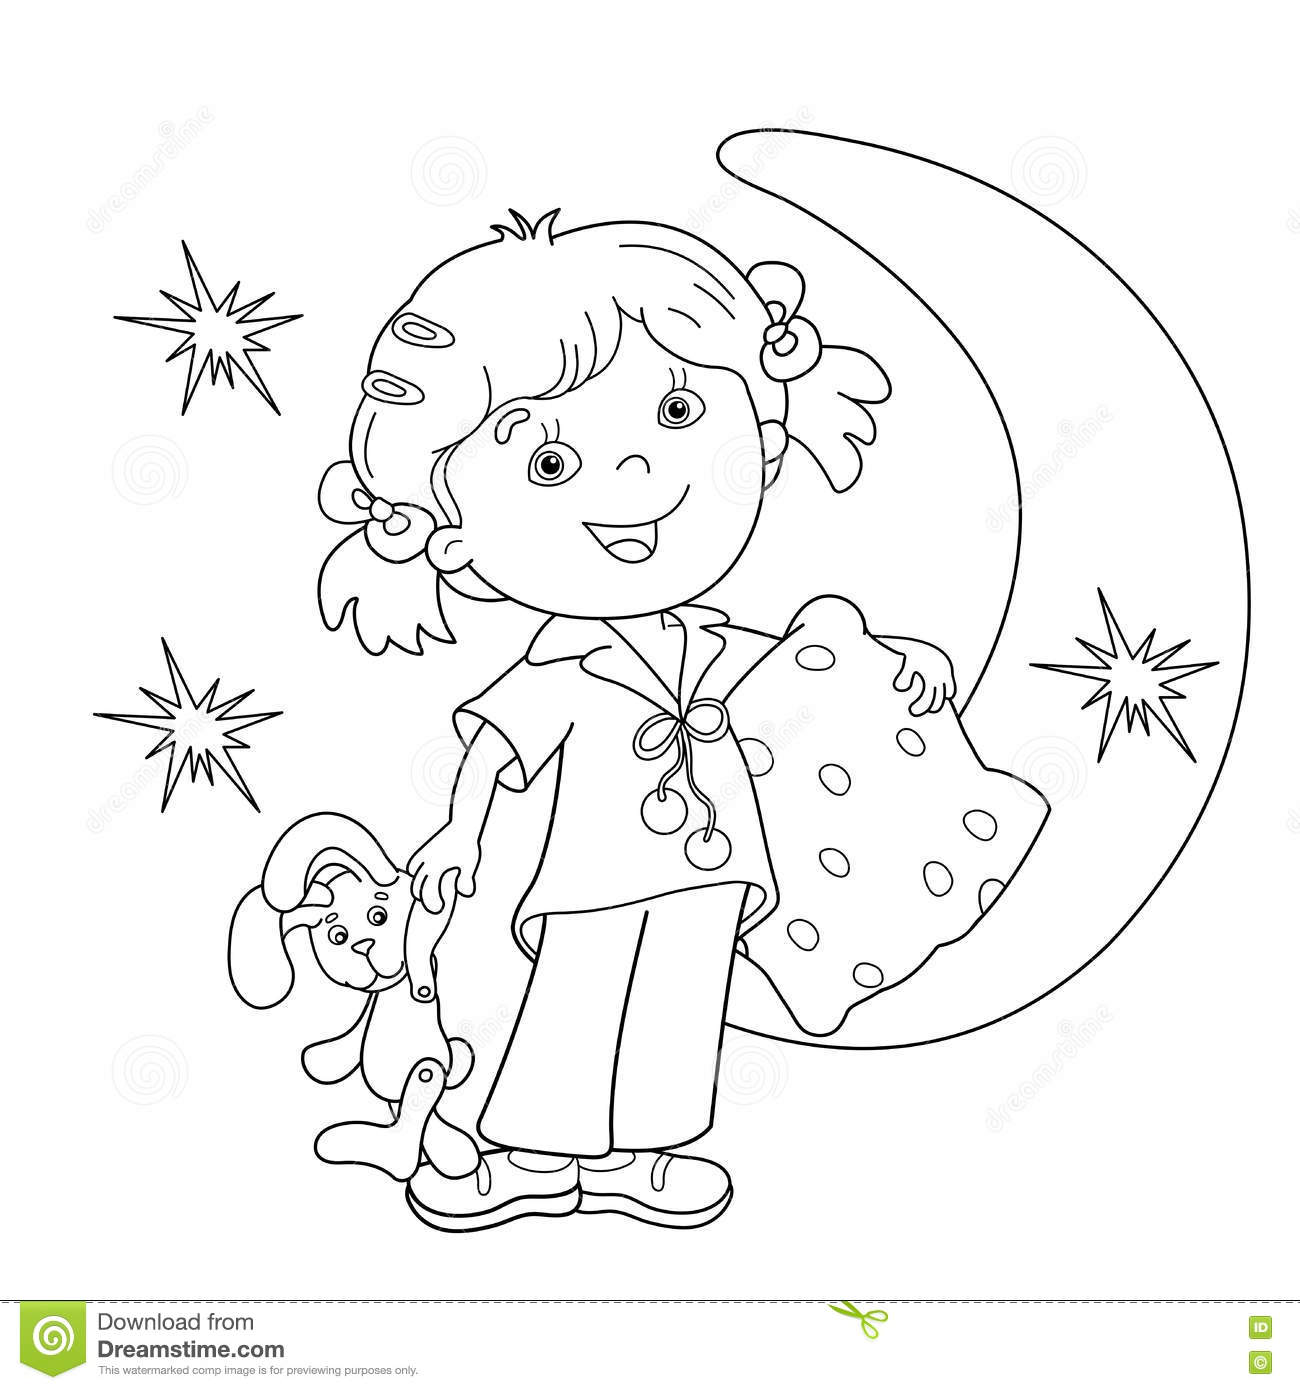 Coloring Page Outline Of Cartoon Girl In Pajamas With